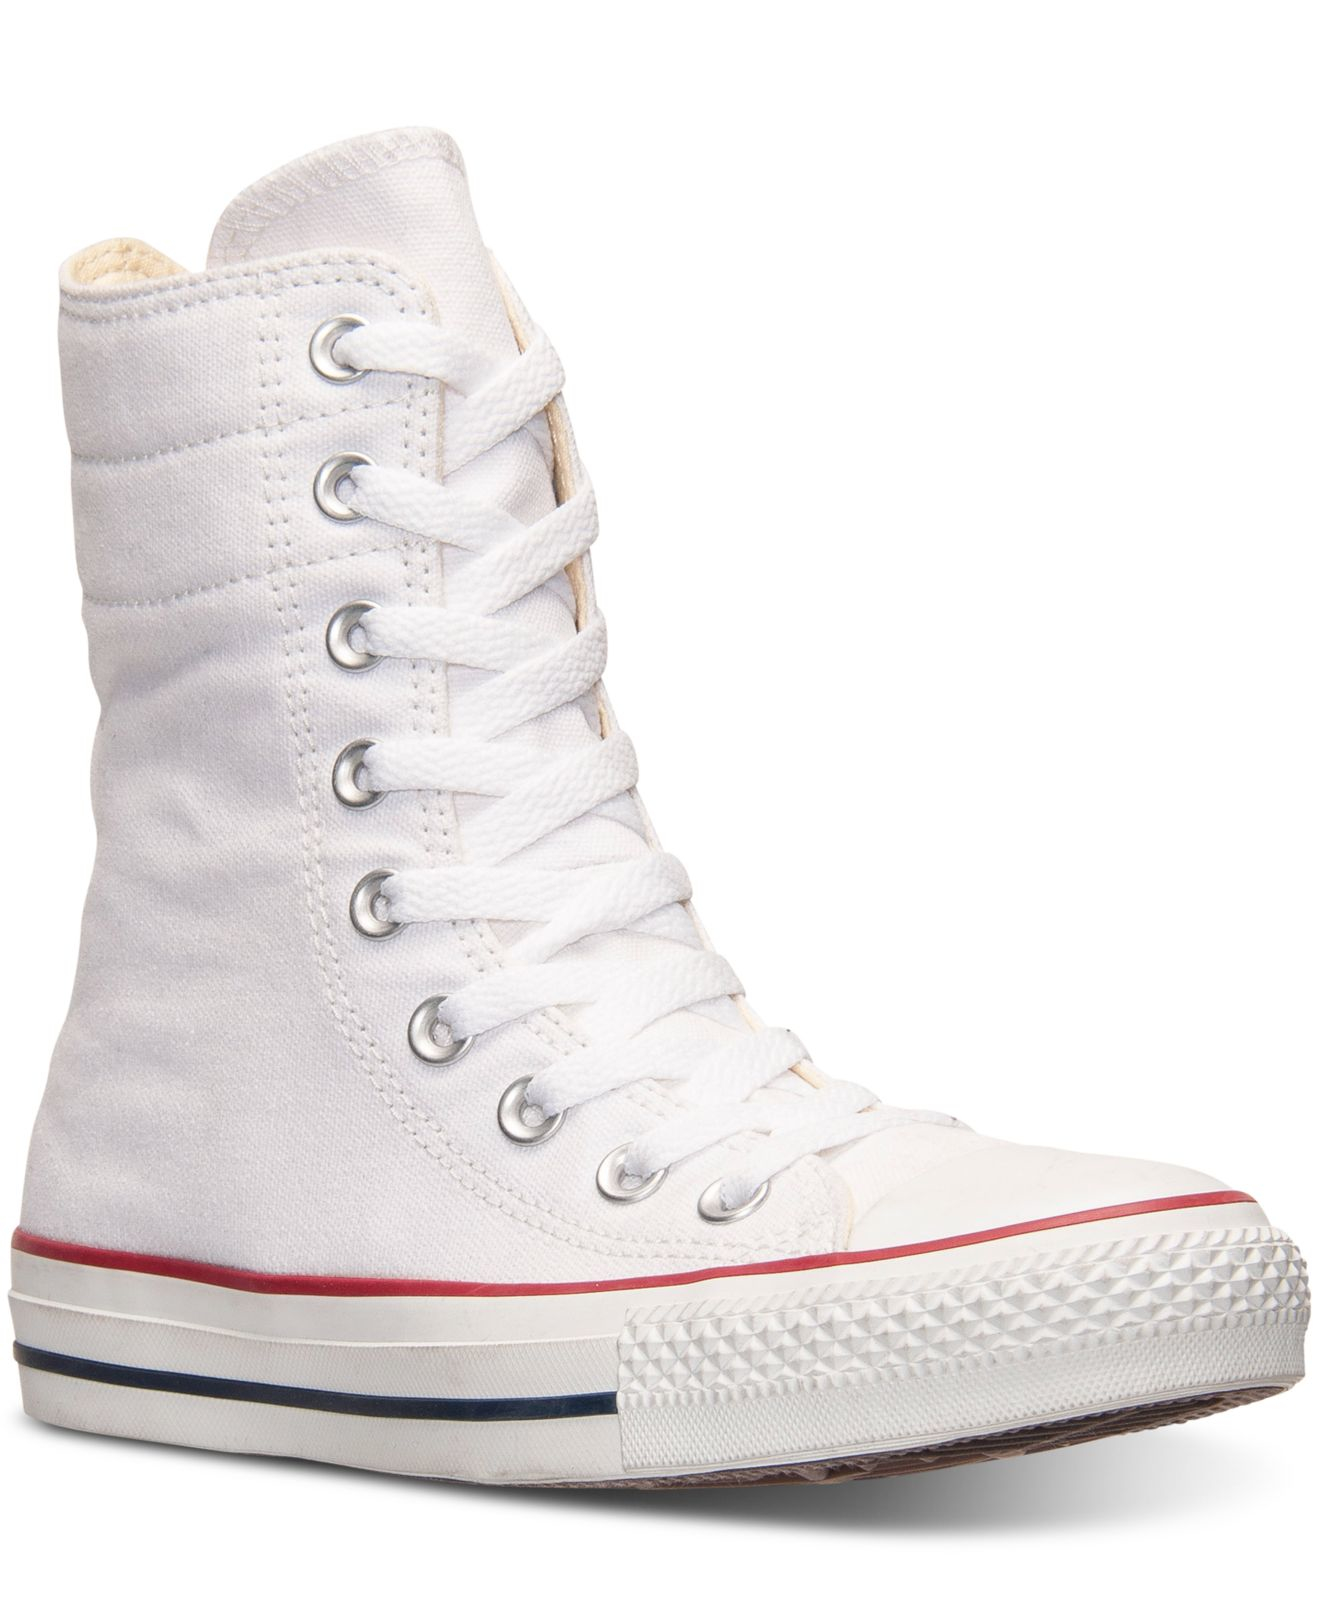 ... clearance lyst converse womens chuck taylor high rise casual sneakers  from 797ae 224d6 a559b113a